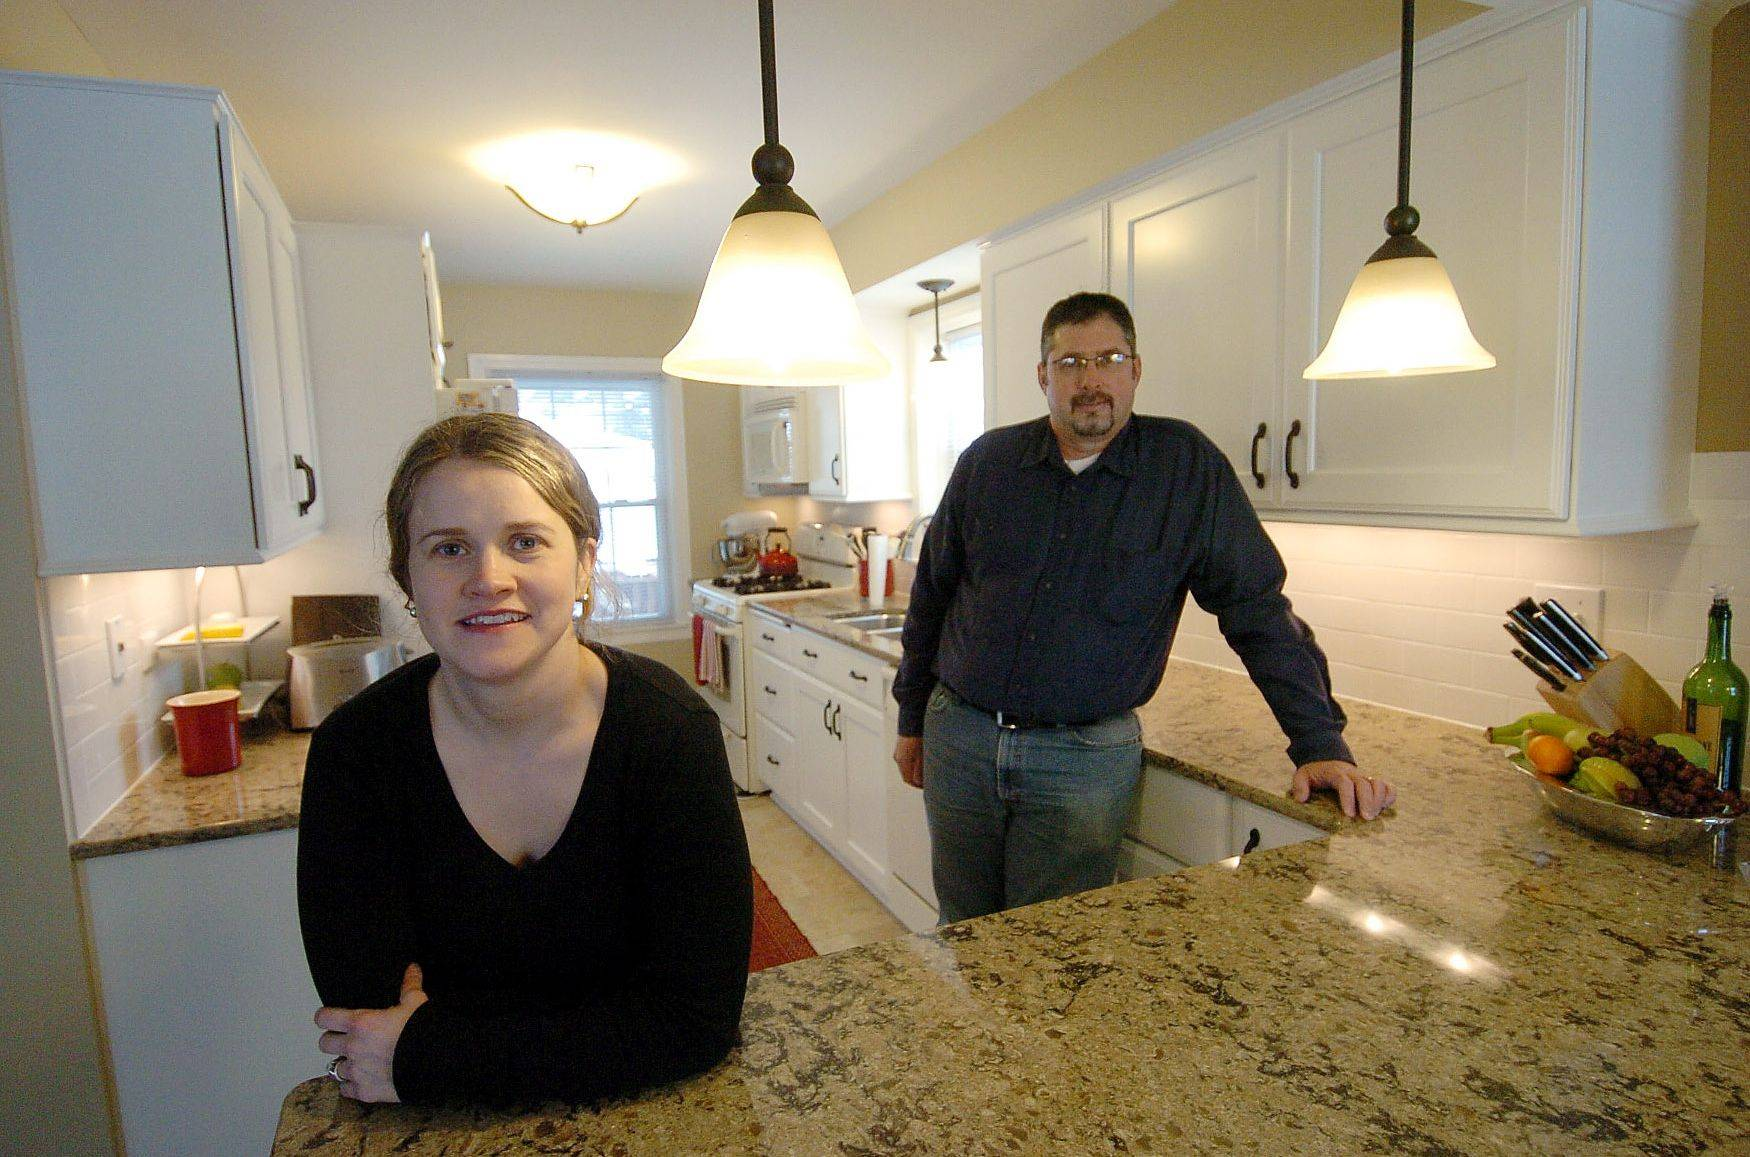 Catherine Esquivel remodeled her kitchen in Mount Prospect with the help of contractor Randy Franz.